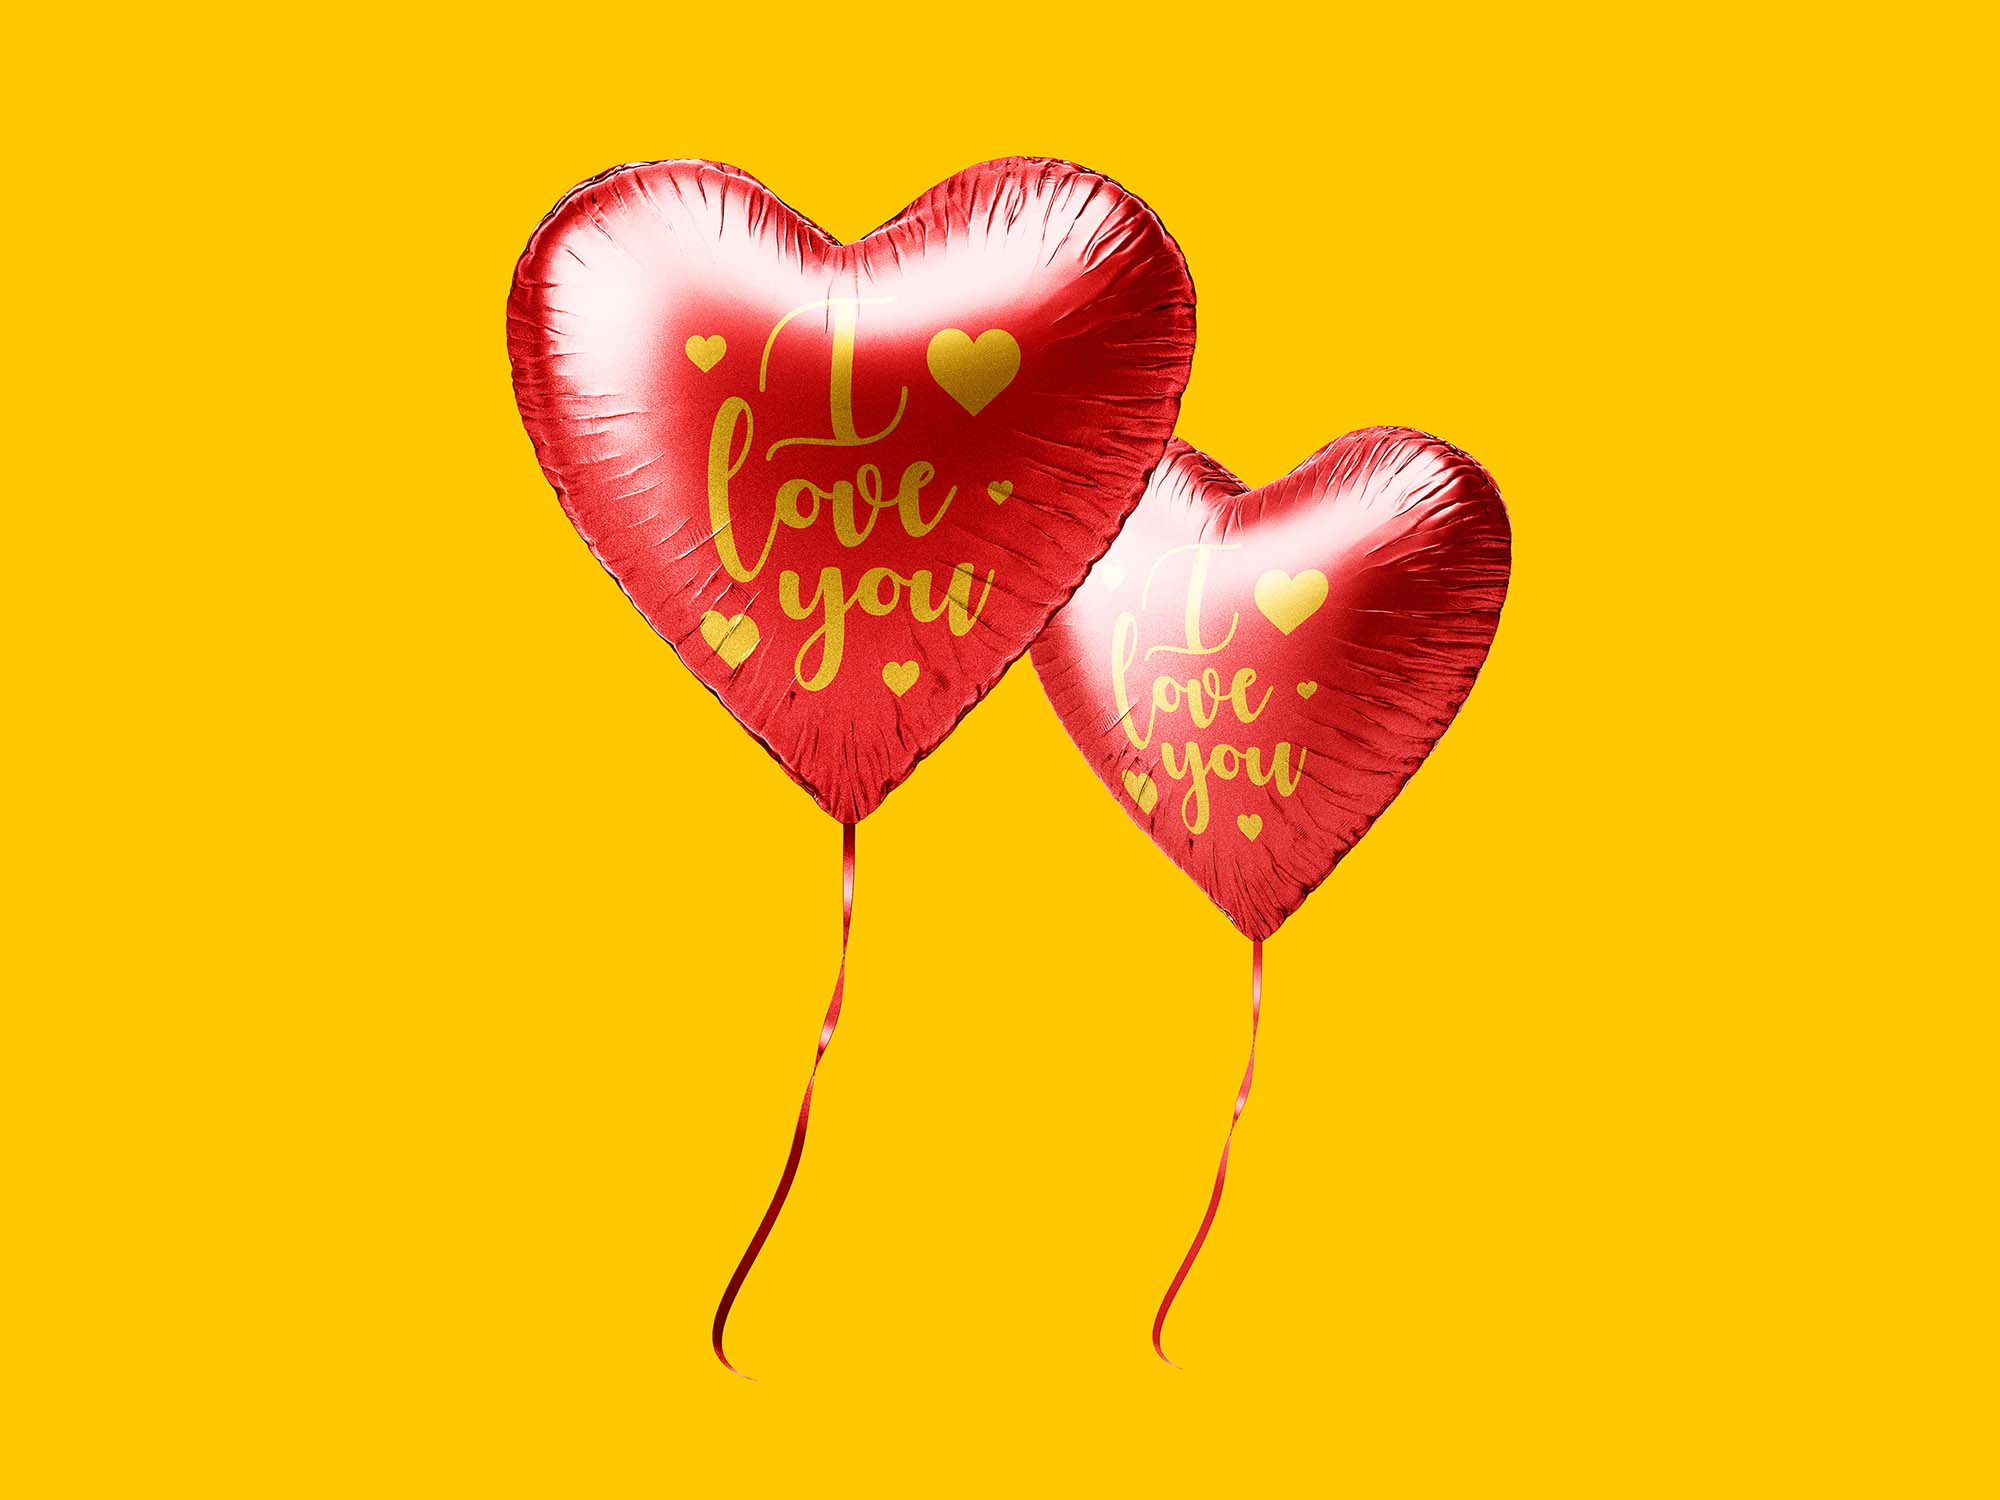 Heart Balloon Mockup